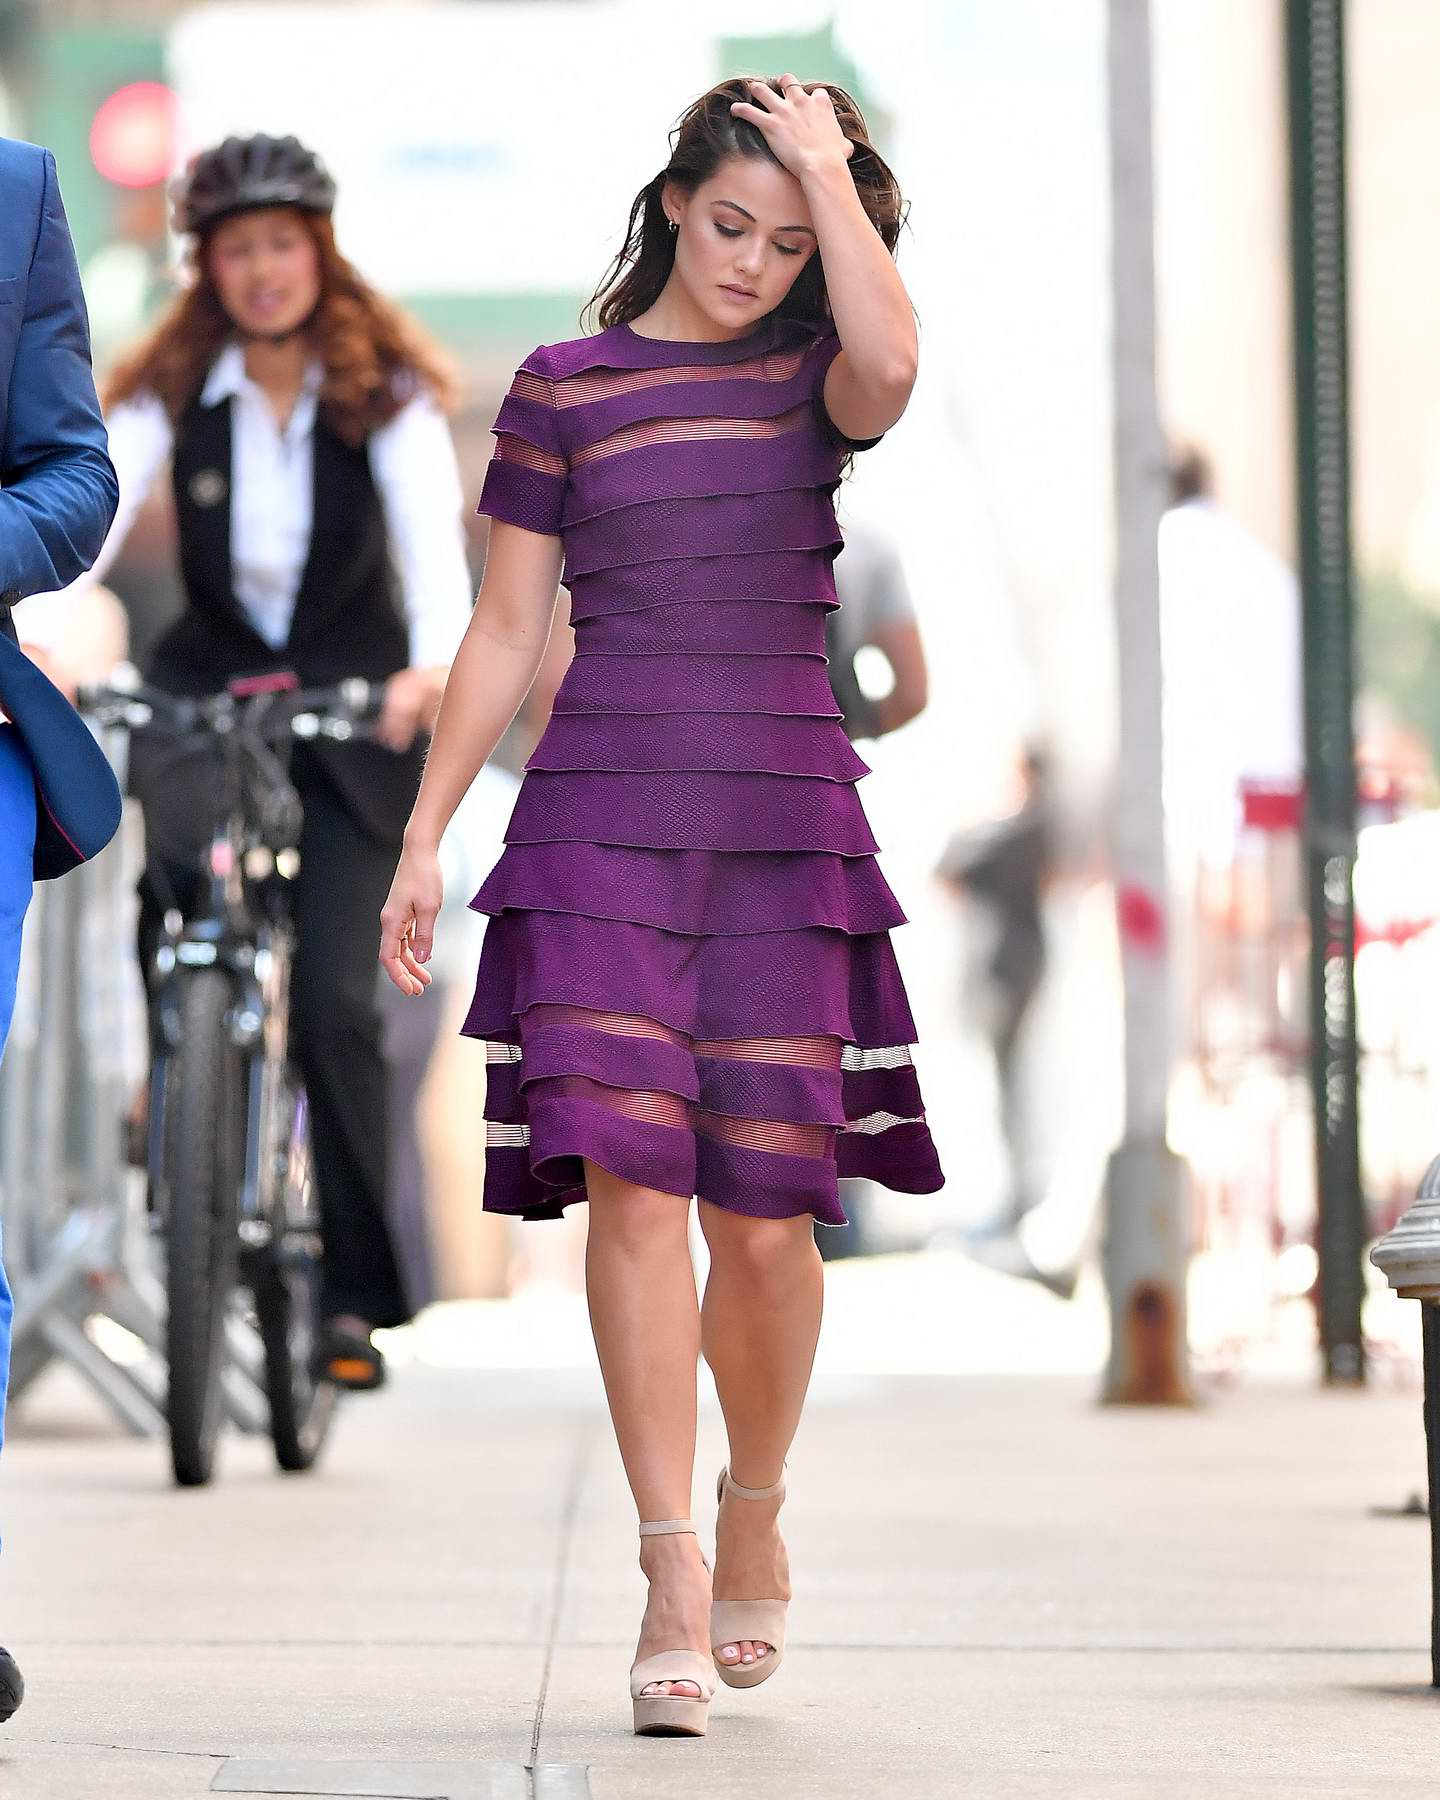 Danielle Campbell spotted wearing a purple dress in New York City